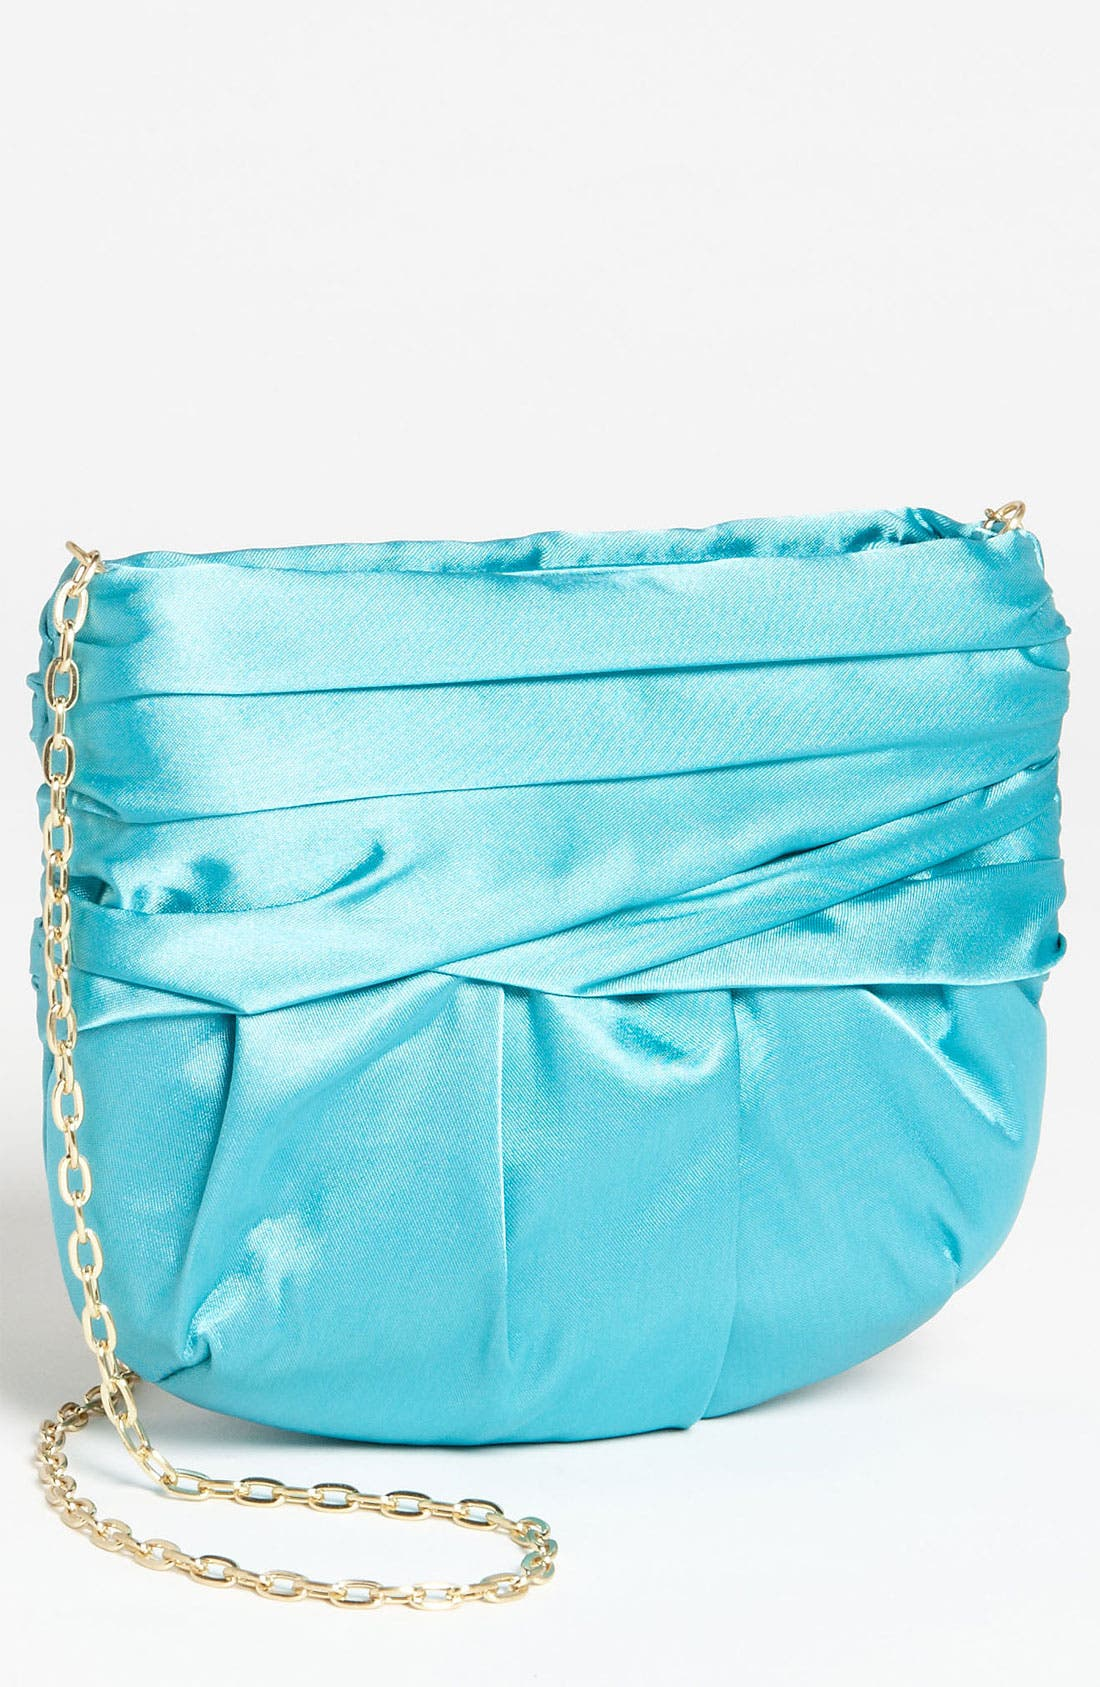 Alternate Image 1 Selected - Glint Pleated Satin Clutch